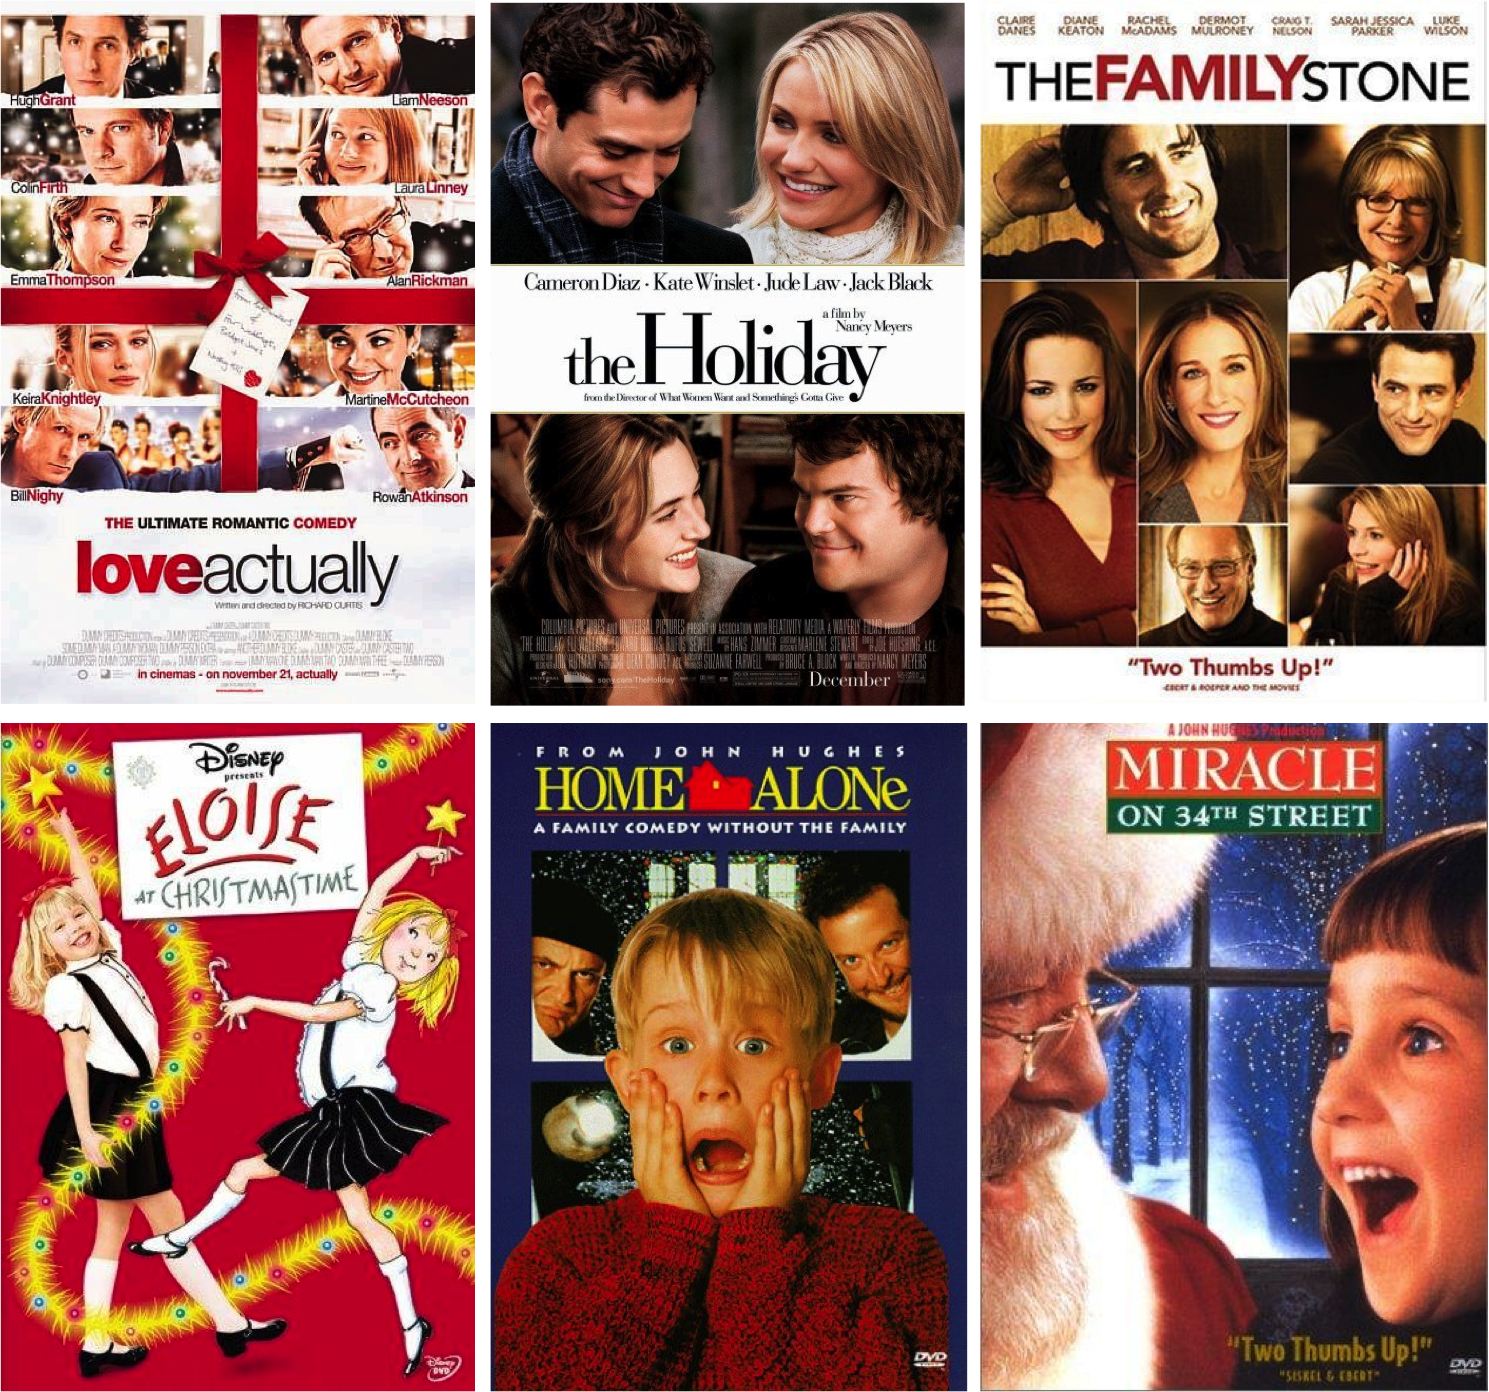 FAVORITECHRISTMASMOVIES